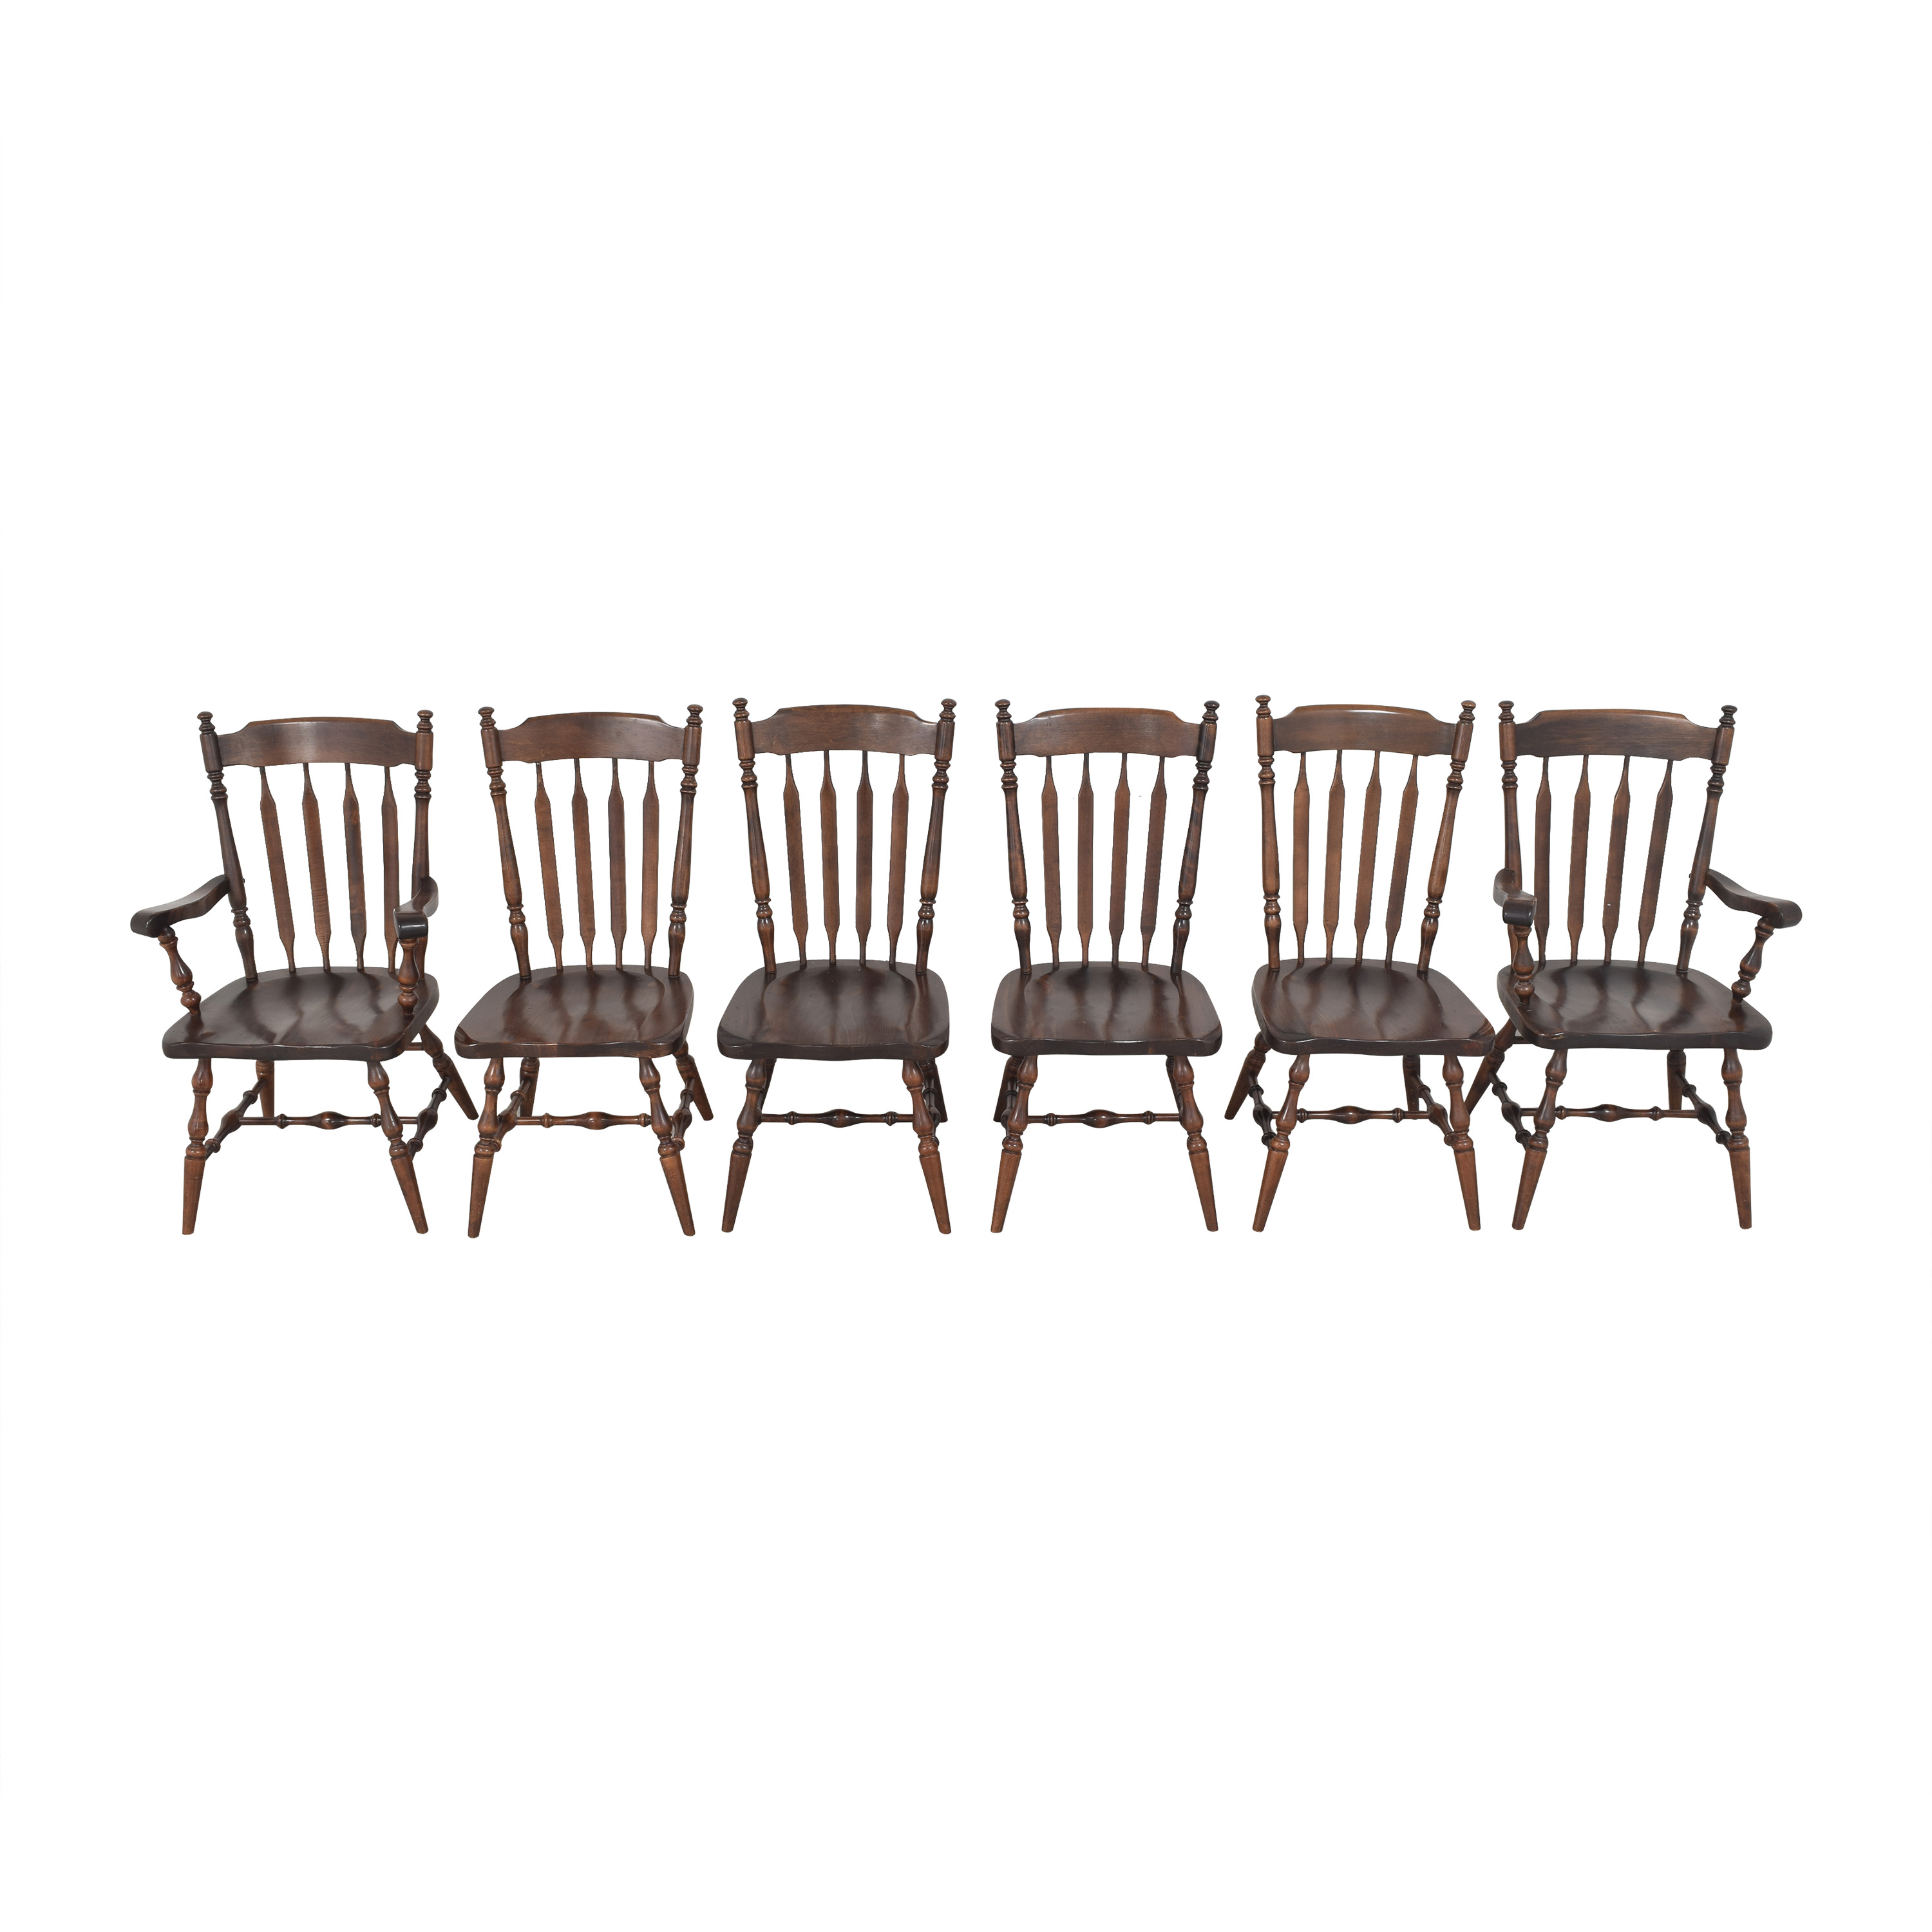 buy Ethan Allen Windsor Dining Chairs Ethan Allen Dining Chairs